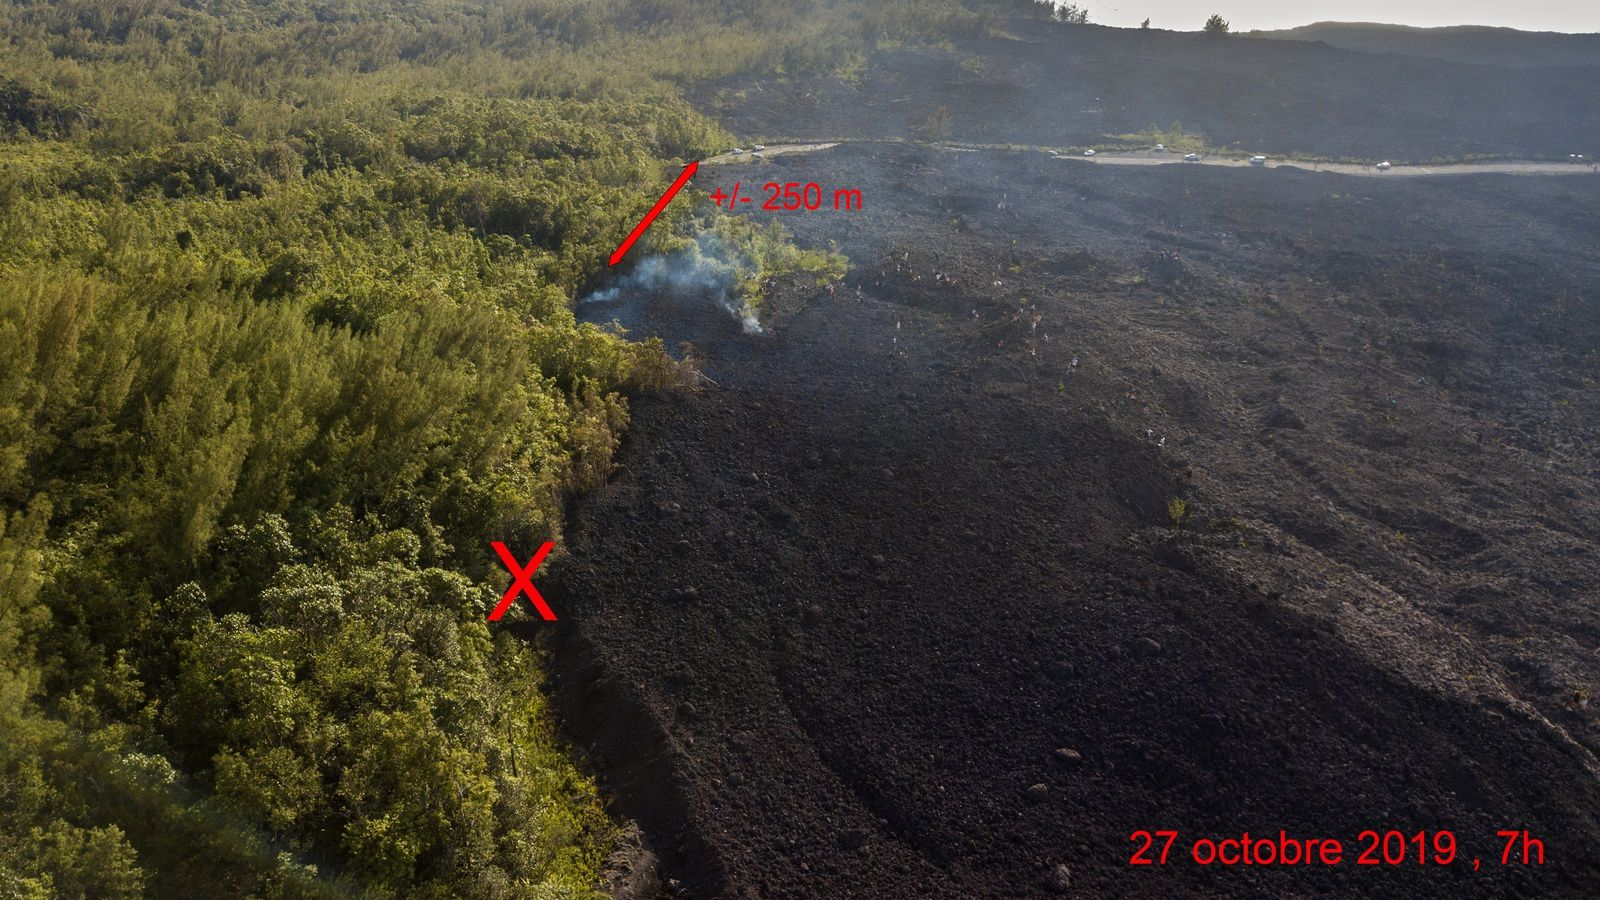 Piton de La Fournaise - in one day, the lava front did not progress much, before stopping at about 250 m from RN2 ; the cross marks the position of the lava front on 26.10.2019 at 07h. - photo © Thierry Sluys 26 and 27.10.2019